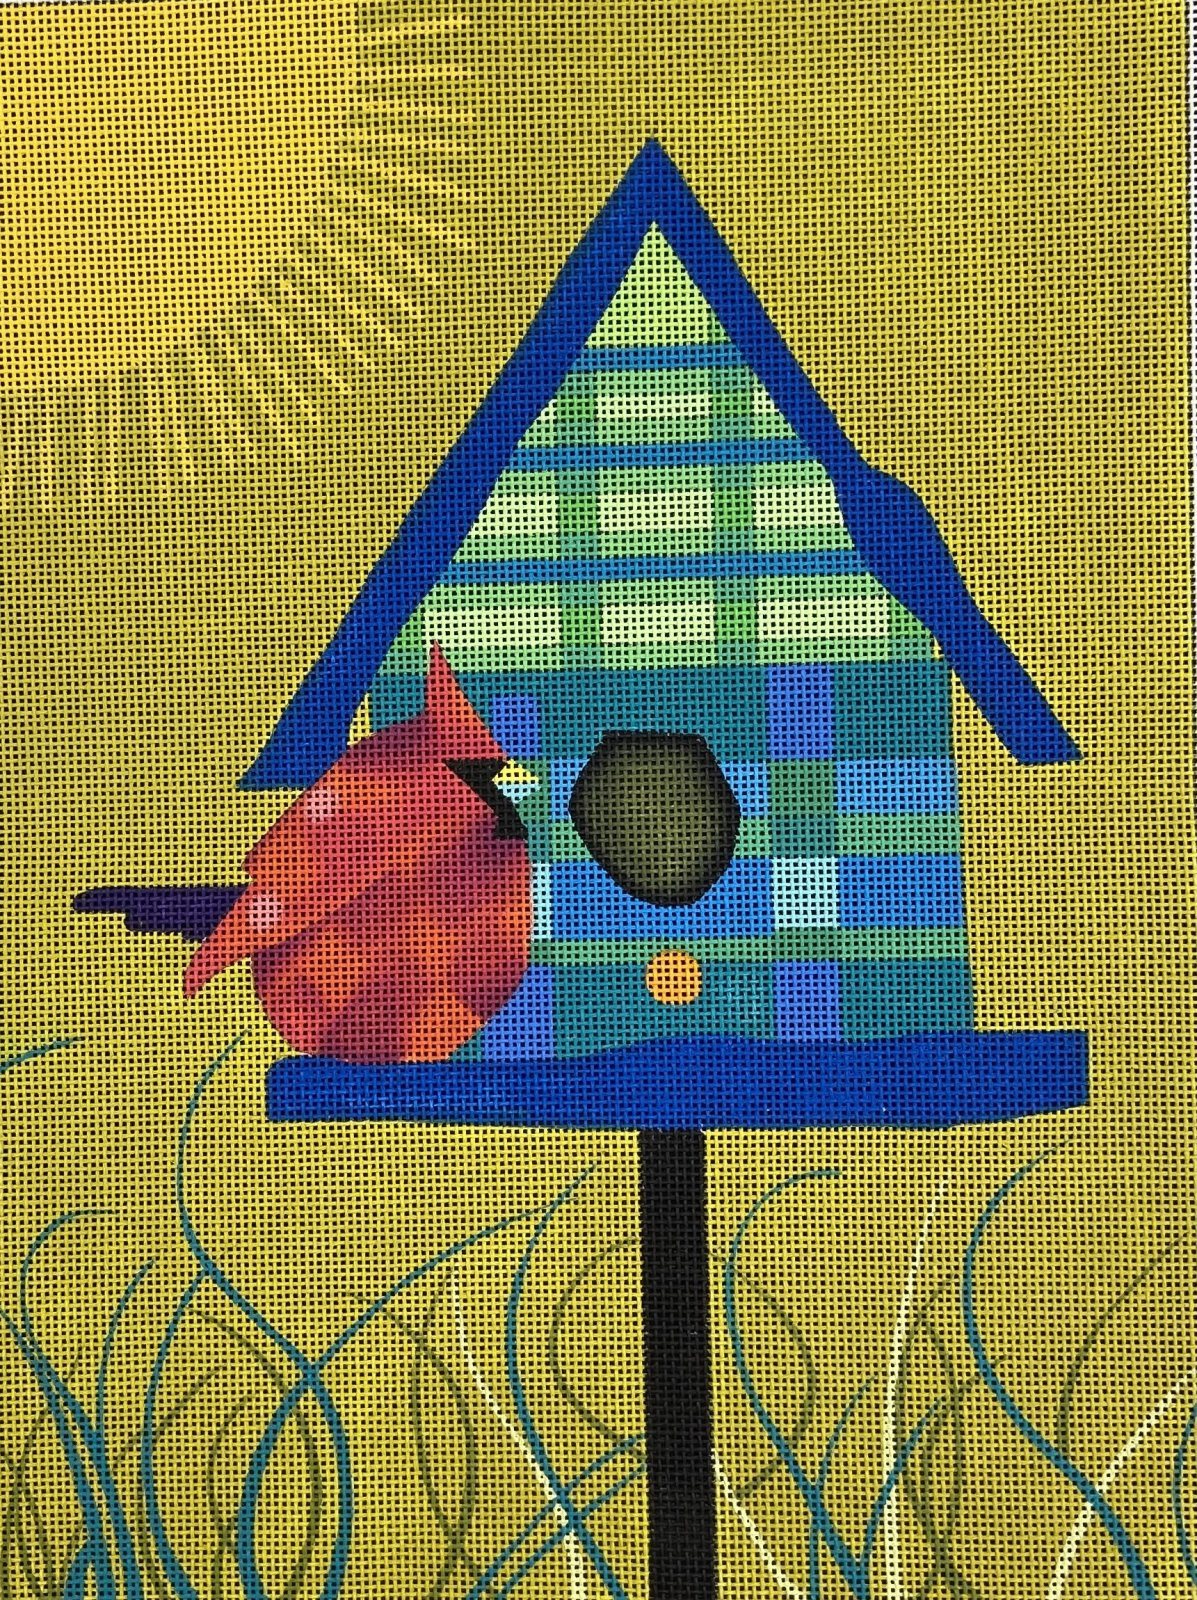 JB280 Birdhouse and Cardinal The Collection